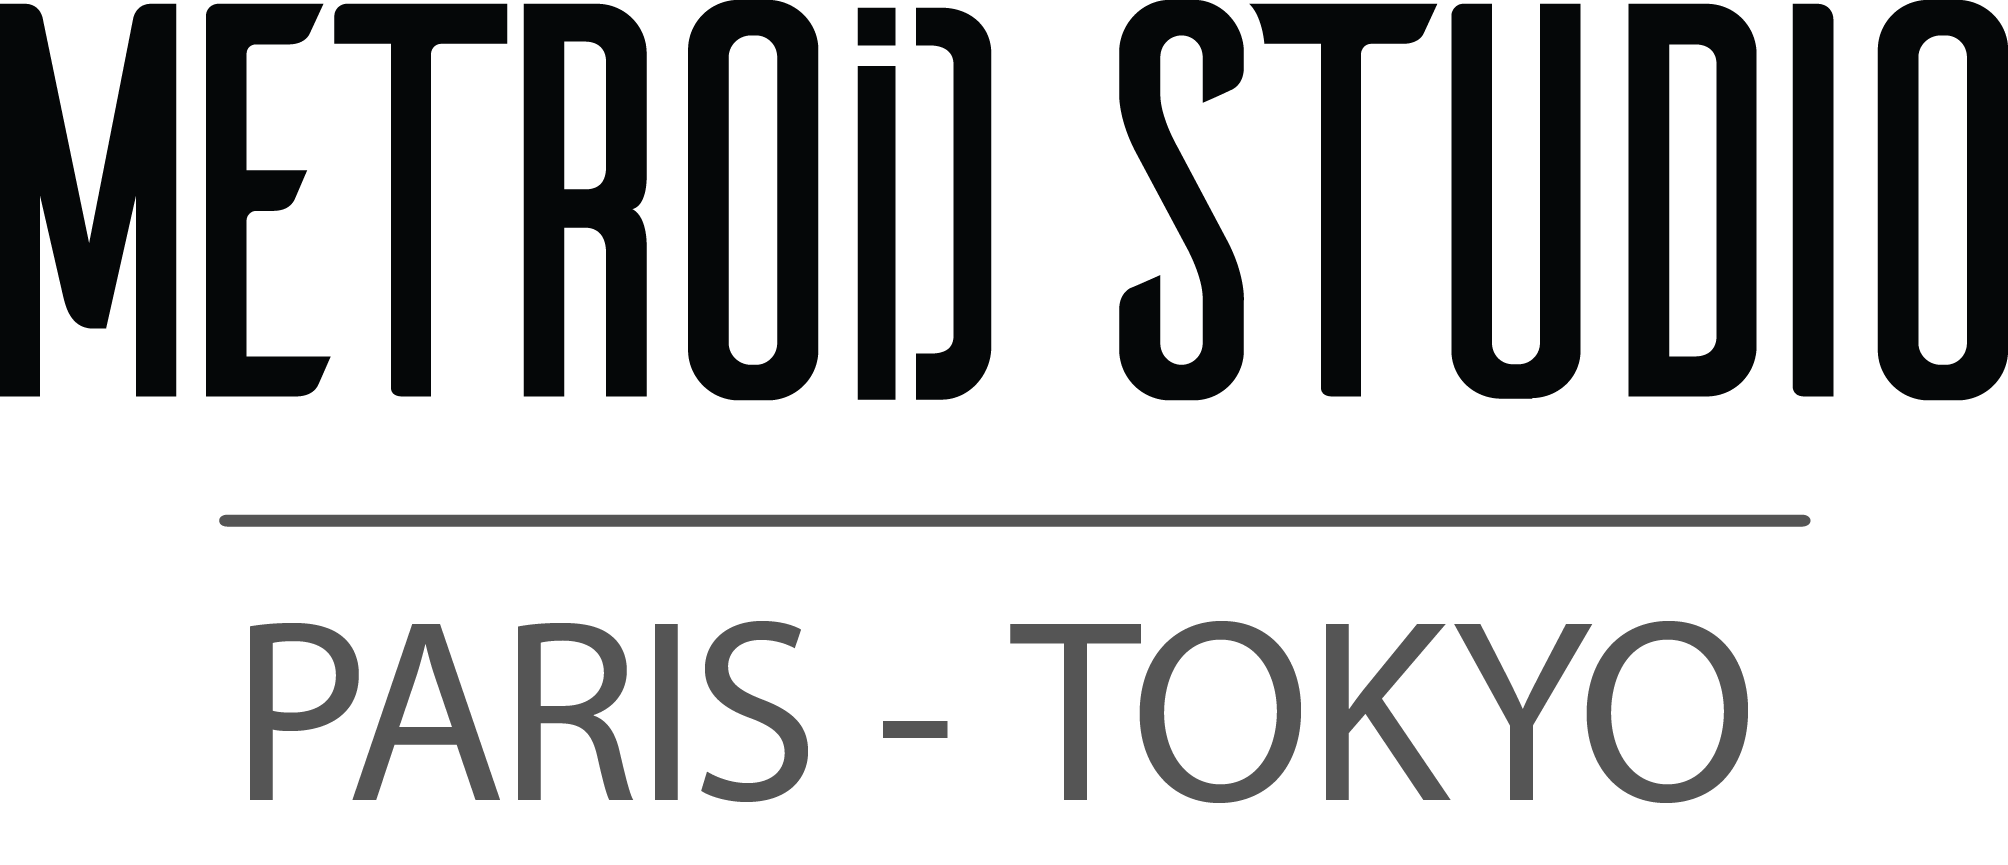 LOGO METROID STUDIO